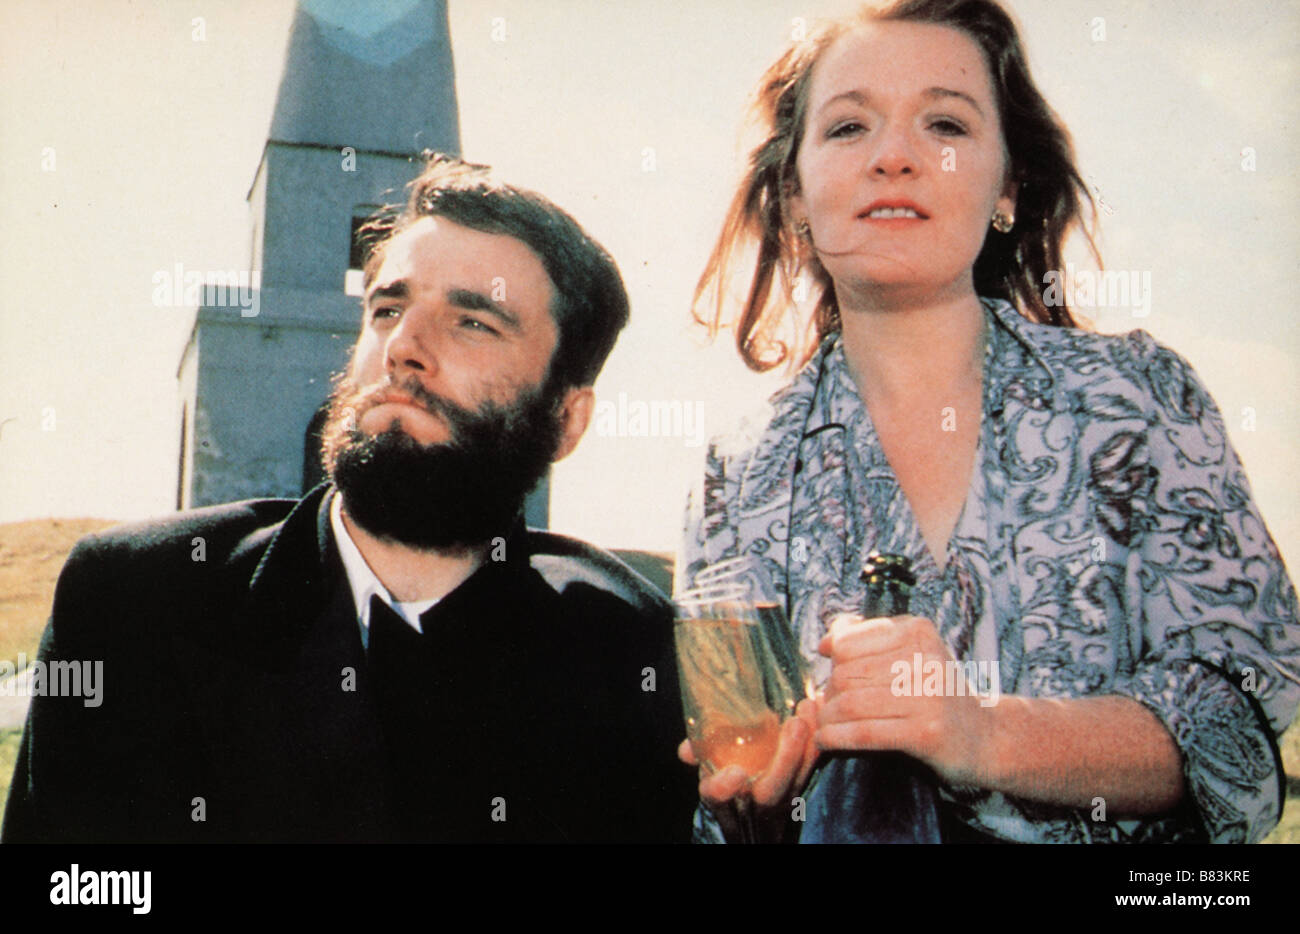 My Left Foot: The Story of Christy Brown  Year: 1989 - Ireland / UK Daniel Day-Lewis , Ruth McCabe  Director: Jim - Stock Image